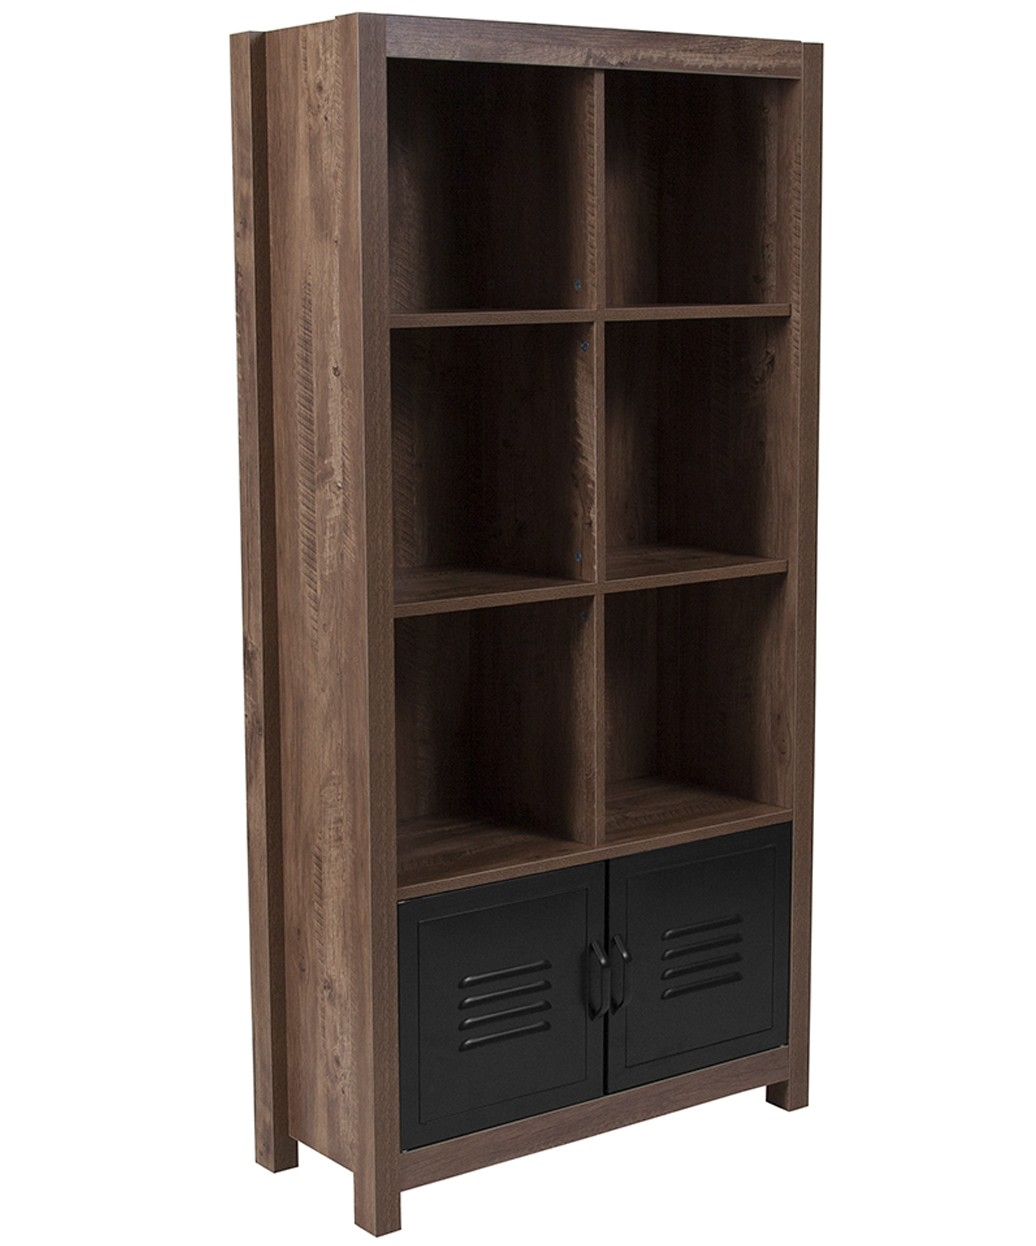 Monroe Retail Display Unit w/ Storage